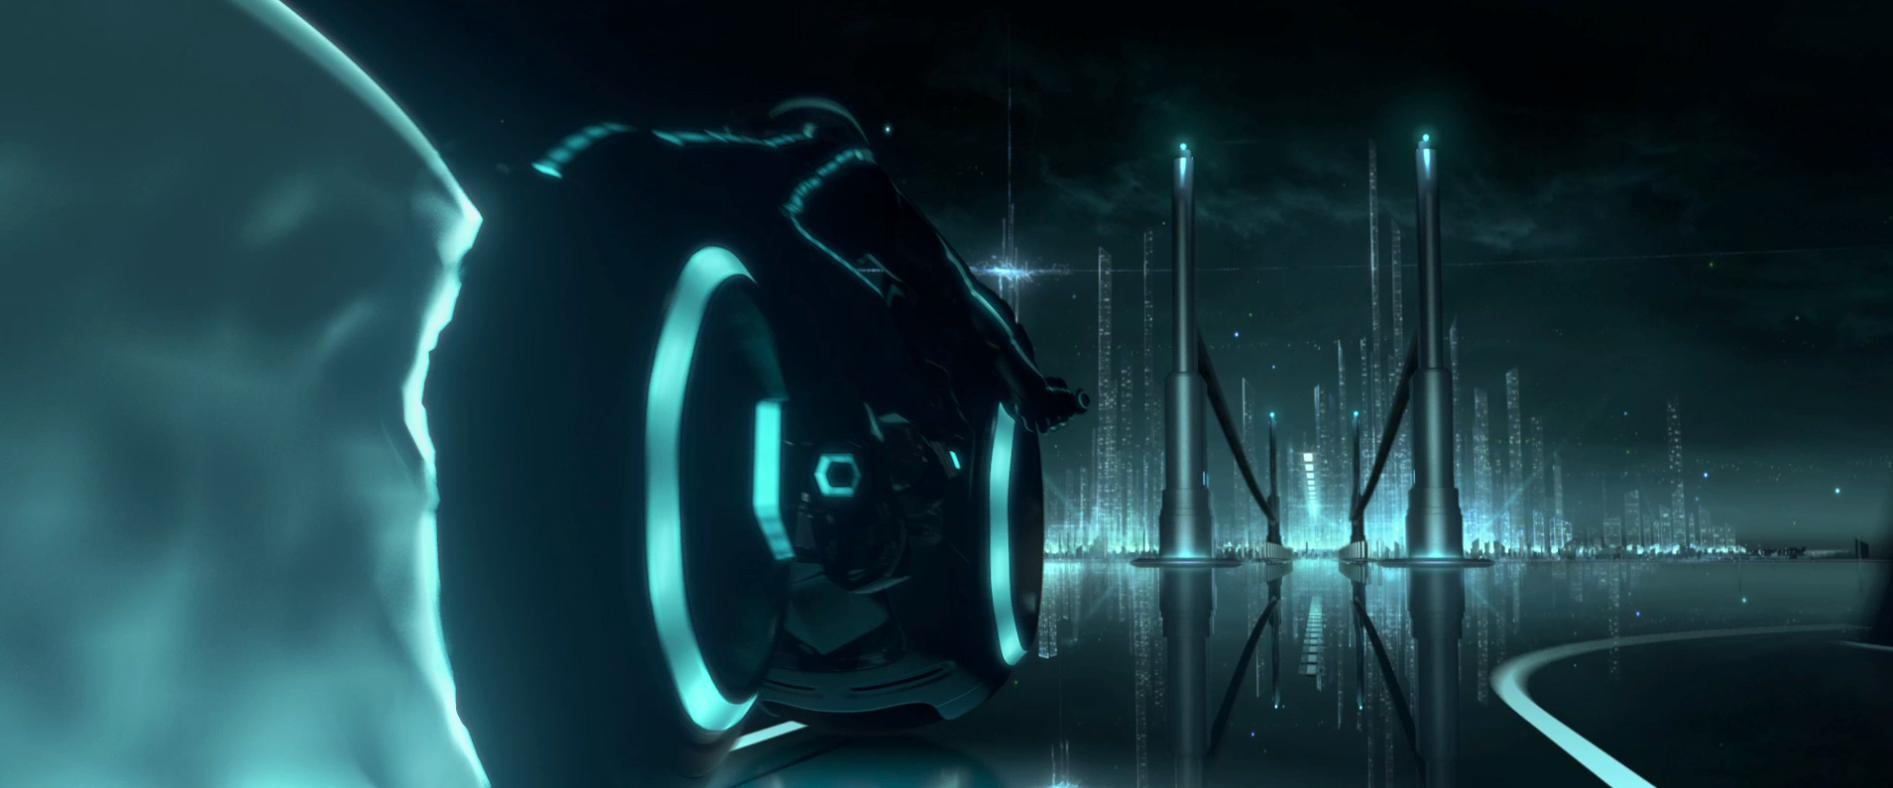 tron the grid wallpaper - photo #33